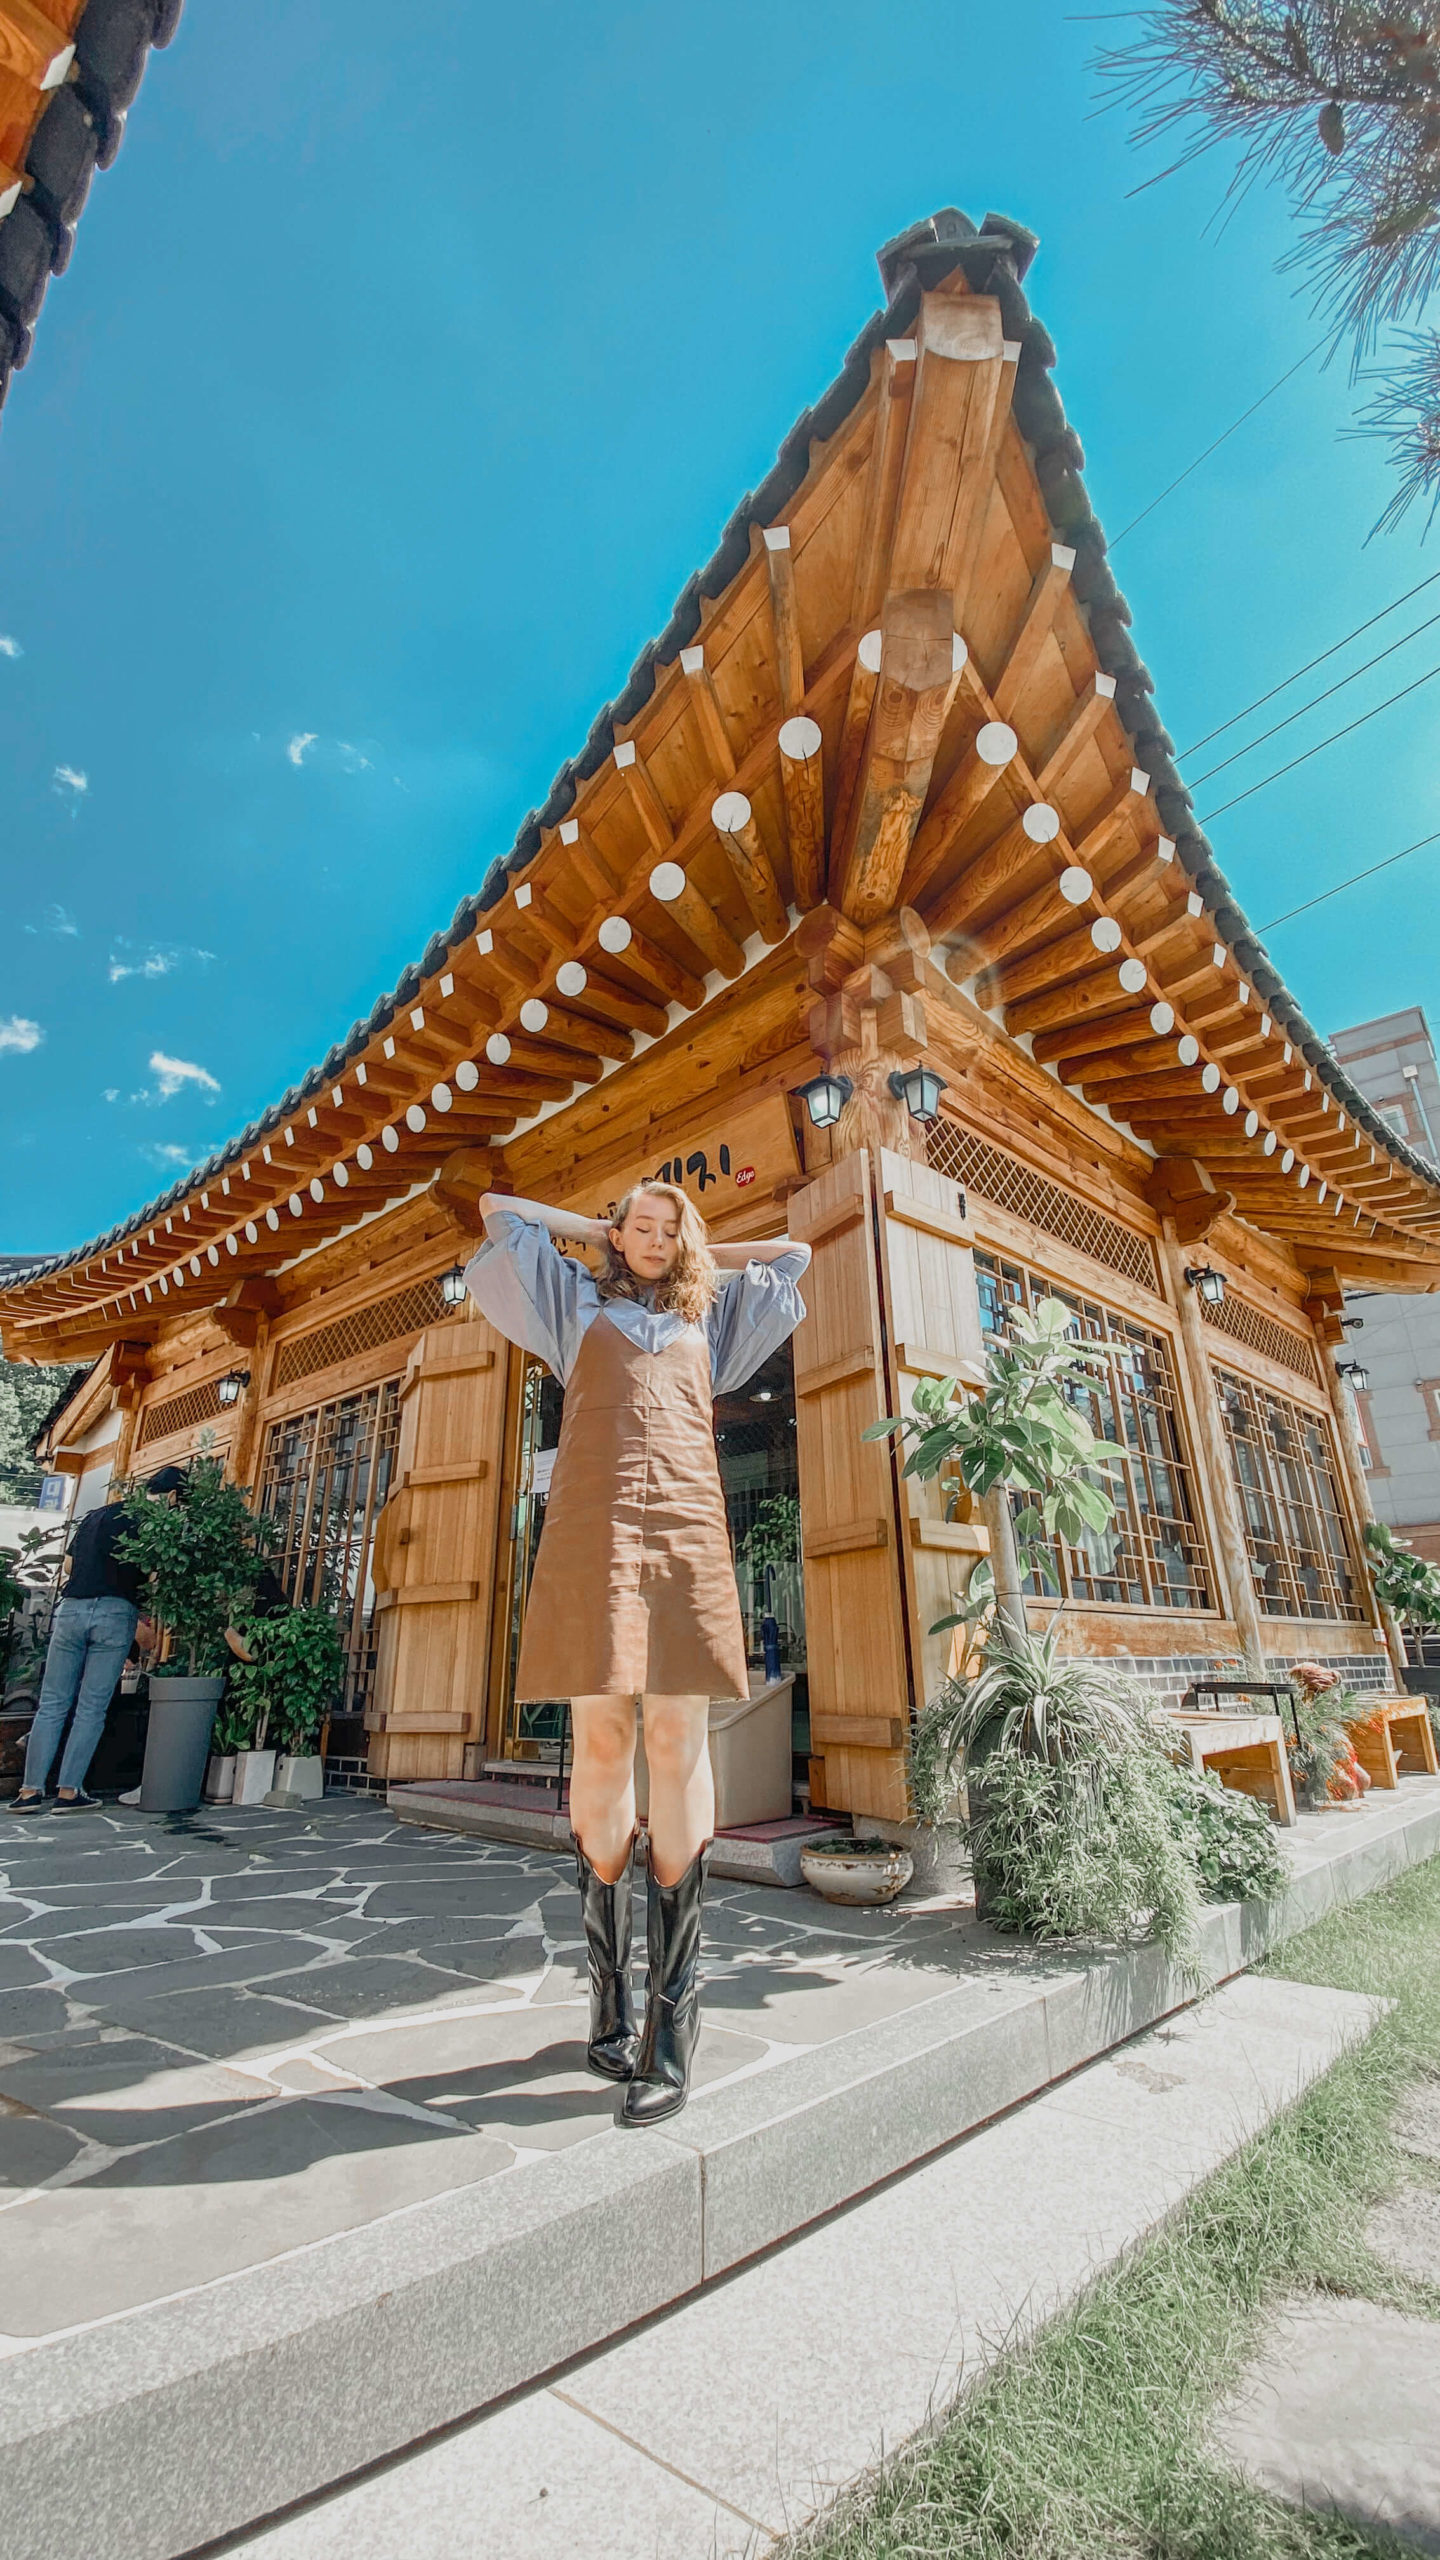 gongju outfit 3 - a photo of fii in front of a cafe in a modern hanok style building. she is wearing a blue blouse with large poofy  sleeves which is underneath a tan leather-look pinafore dress. She is wearing knee high cowboy botos